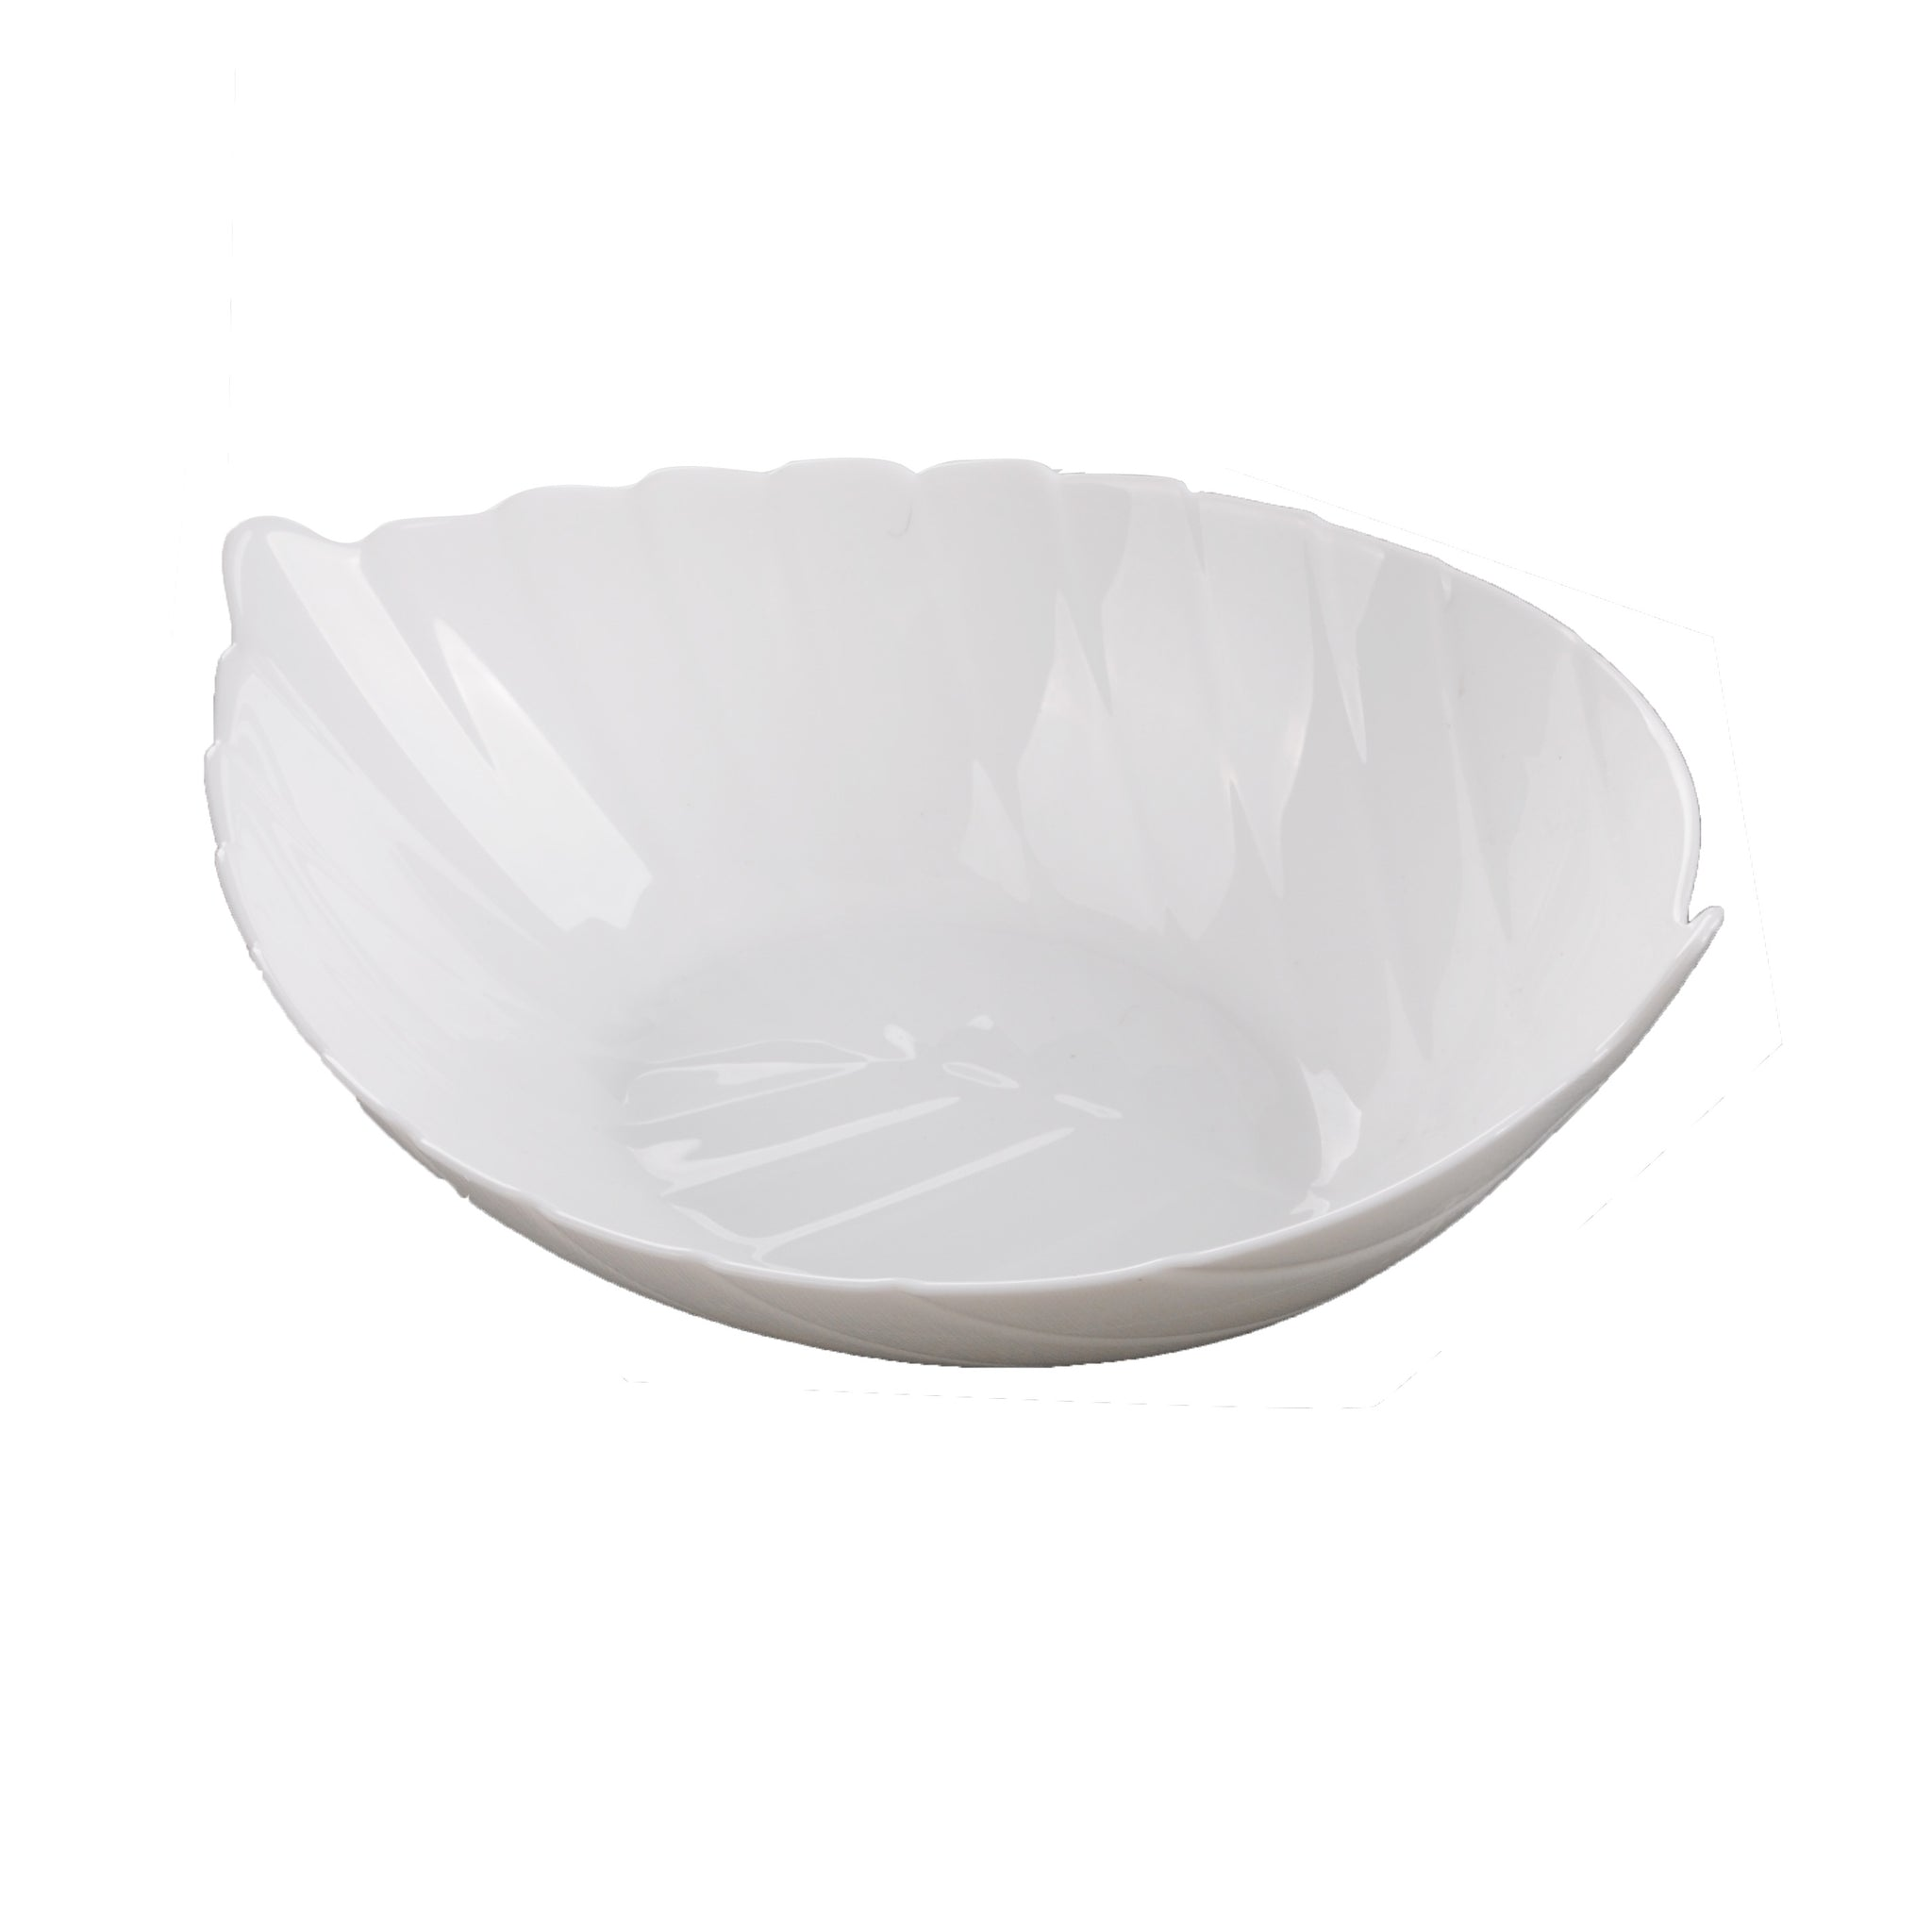 Royalford 5-inch Leaf Shape Bowl Design - Portable, Lightweight Bowl Breakfast Cereal Dessert Serving Bowl | Durable Material | Ideal for Rice, Pasta, Deserts, Ice-cream & More (White)